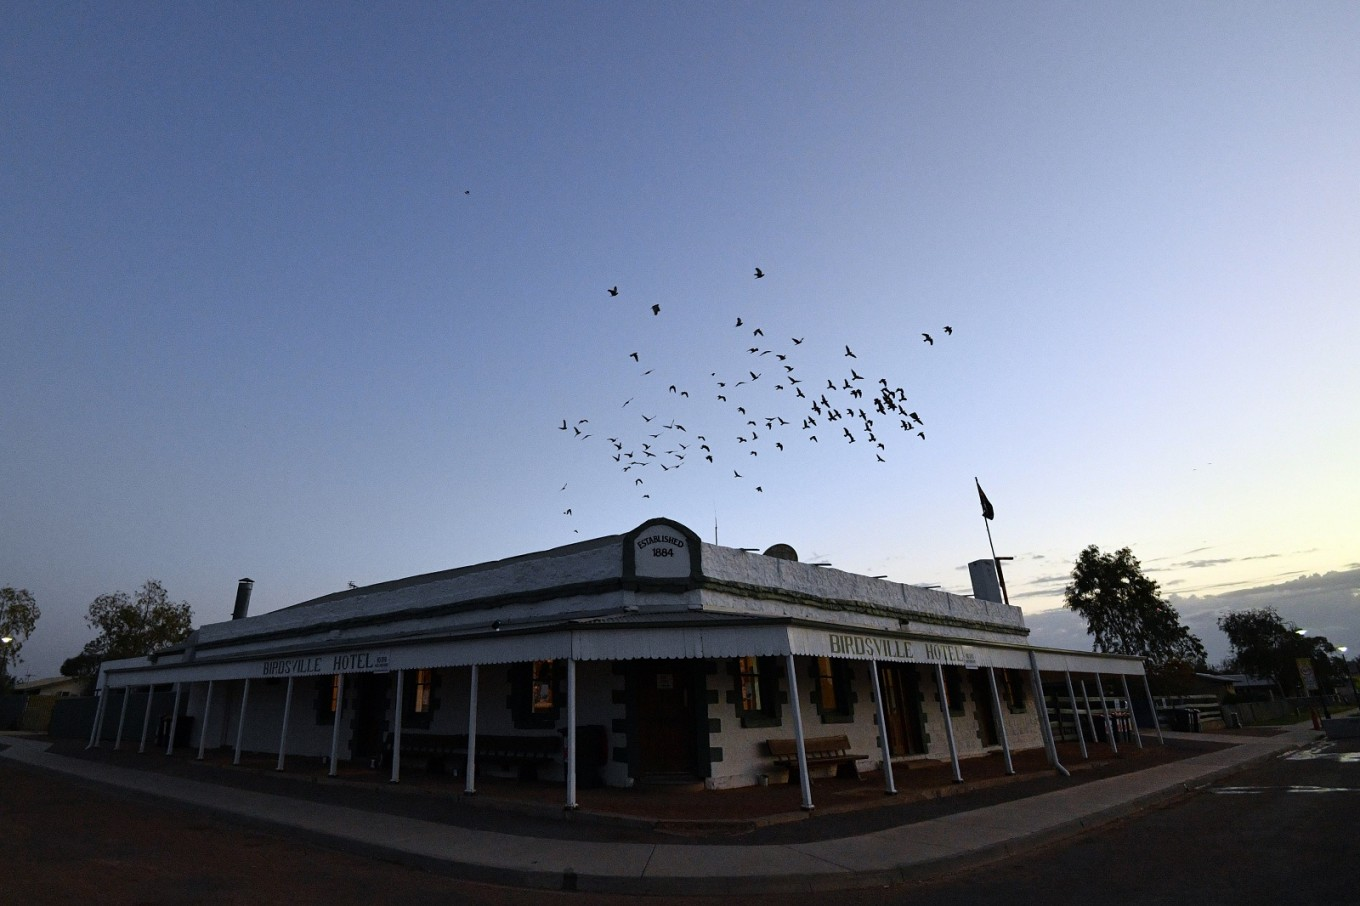 For sale: Australian pub in the middle of nowhere